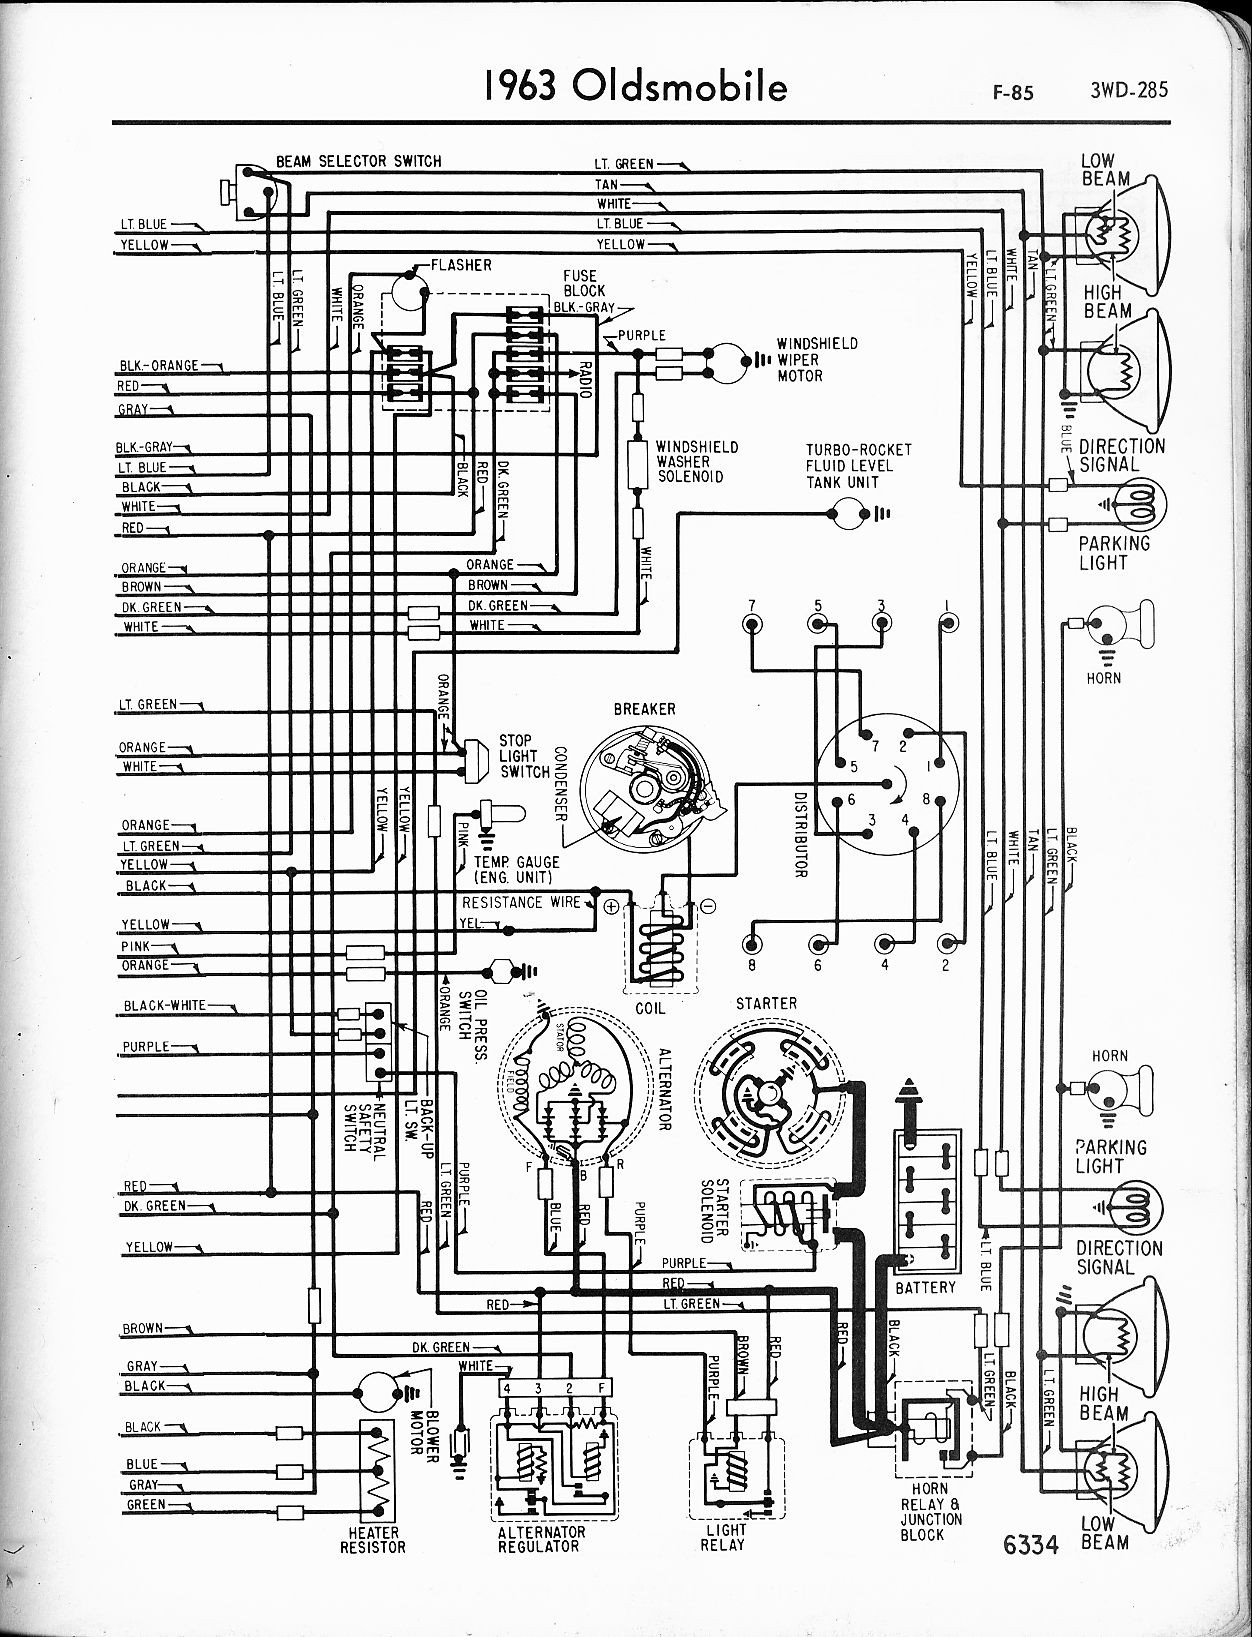 Olds Aurora Hvac Wiring Diagram - Wiring Diagram Fascinating on